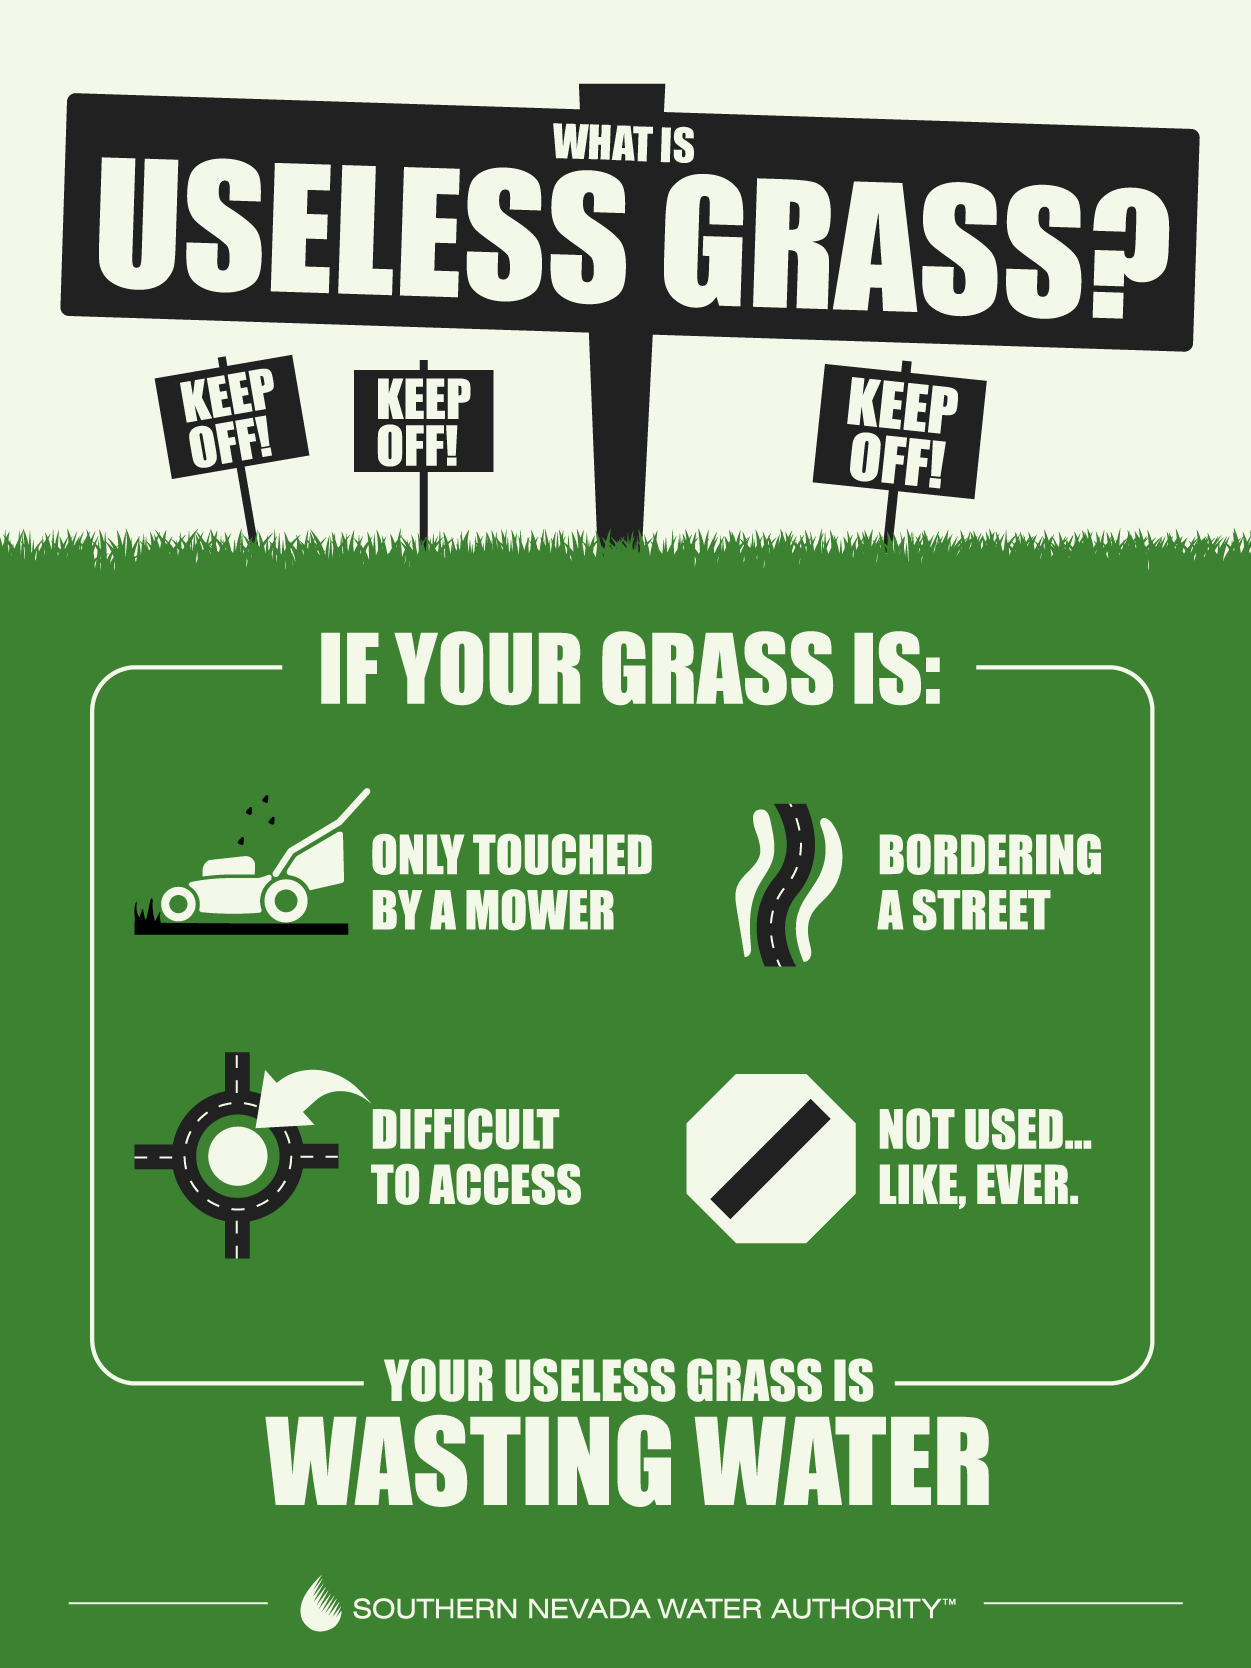 An infographic depicting what constitutes useless grass